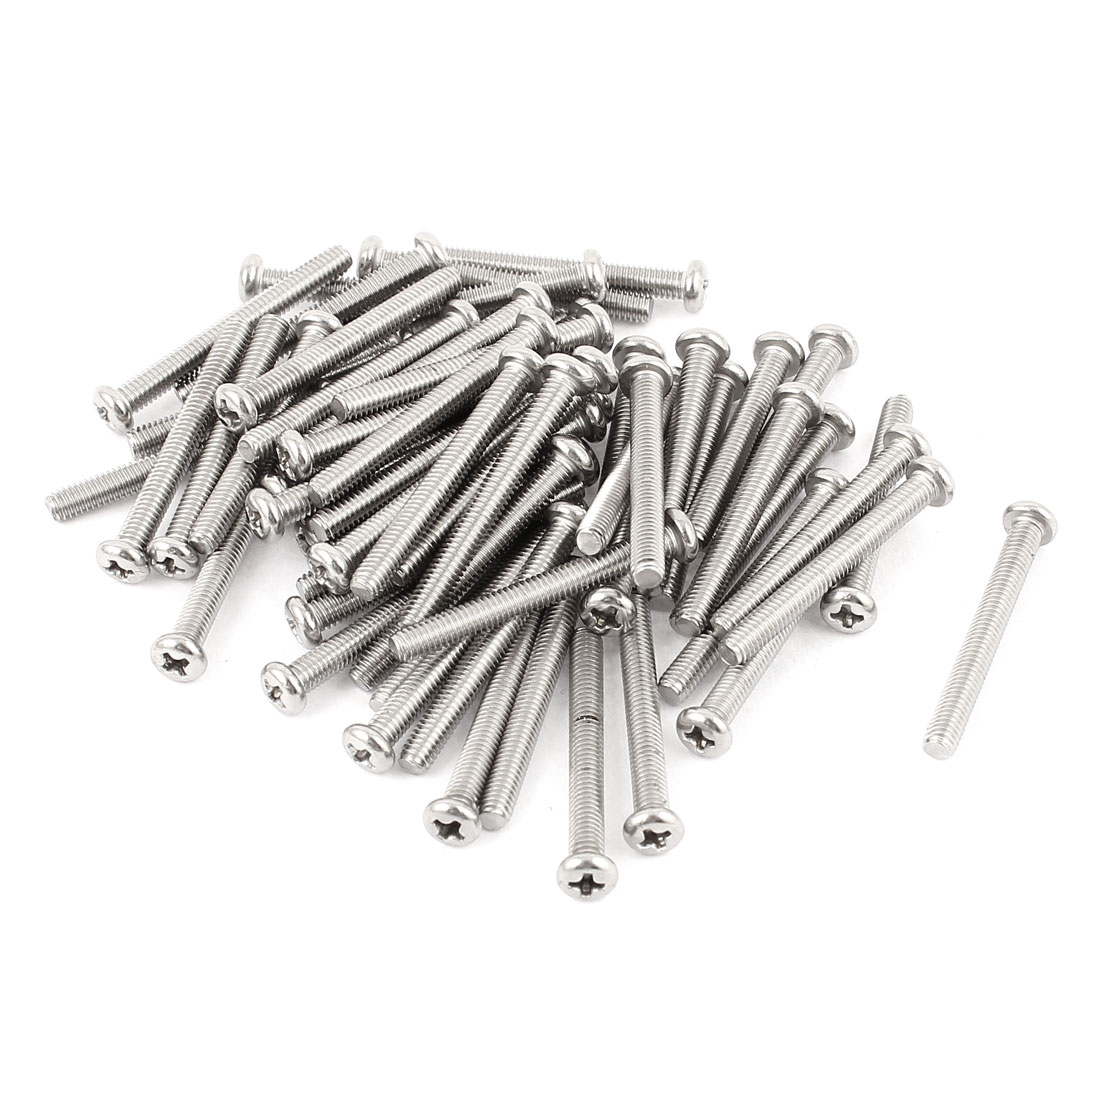 M4 x 35mm 304 Stainless Steel Crosshead Phillips Round Head Screws Bolt 60pcs